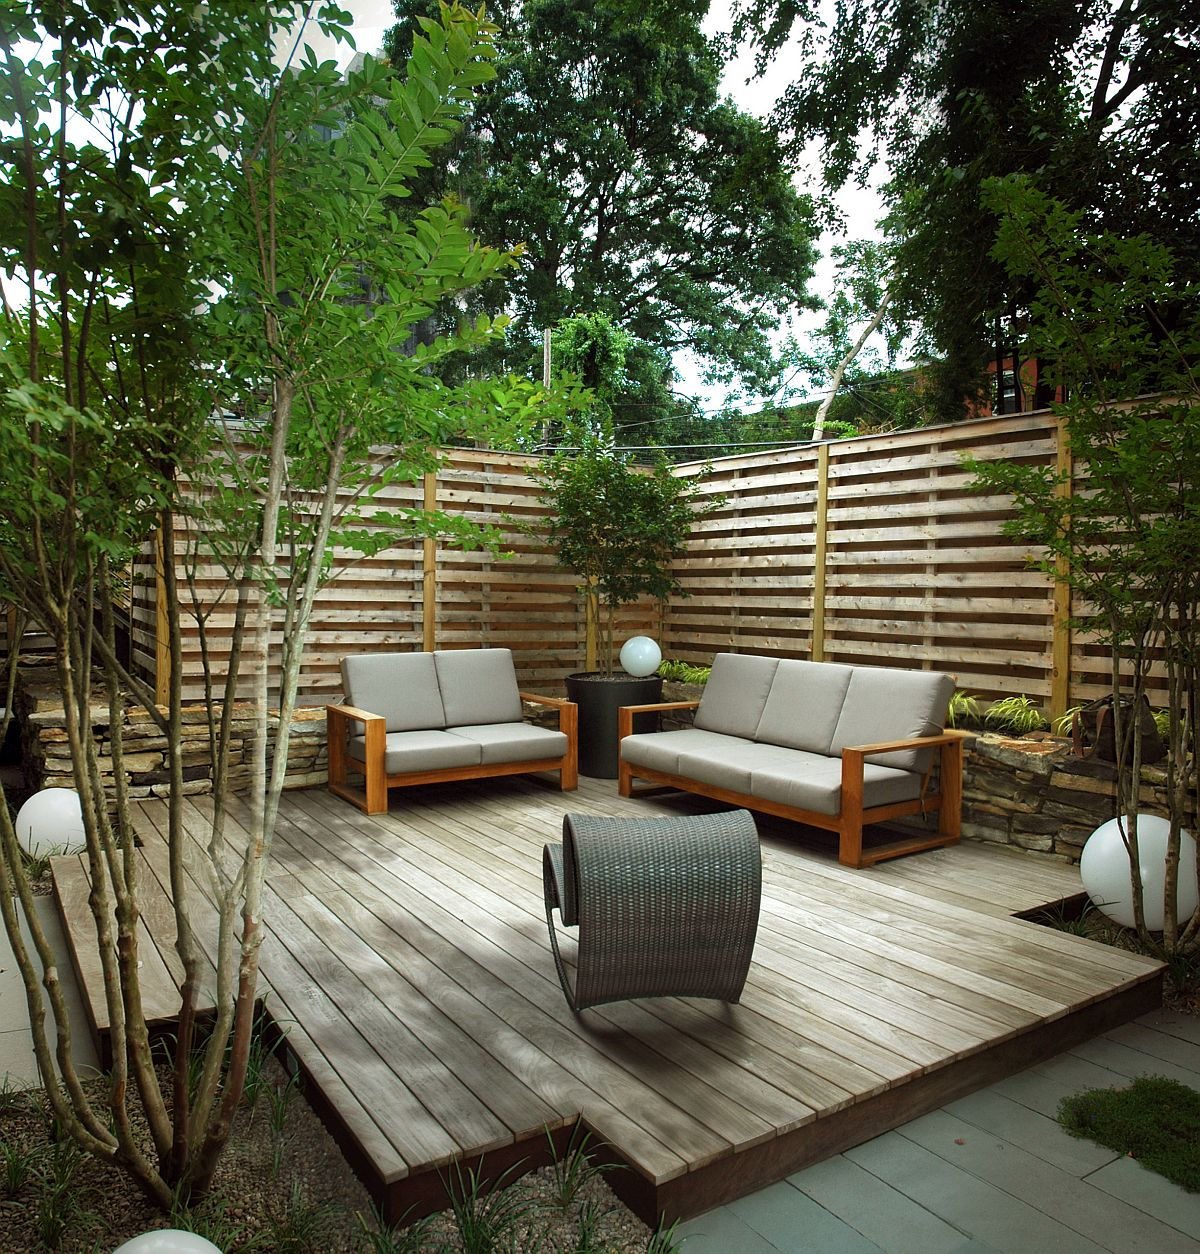 Nature makes the biggest impact in this small contemporary deck